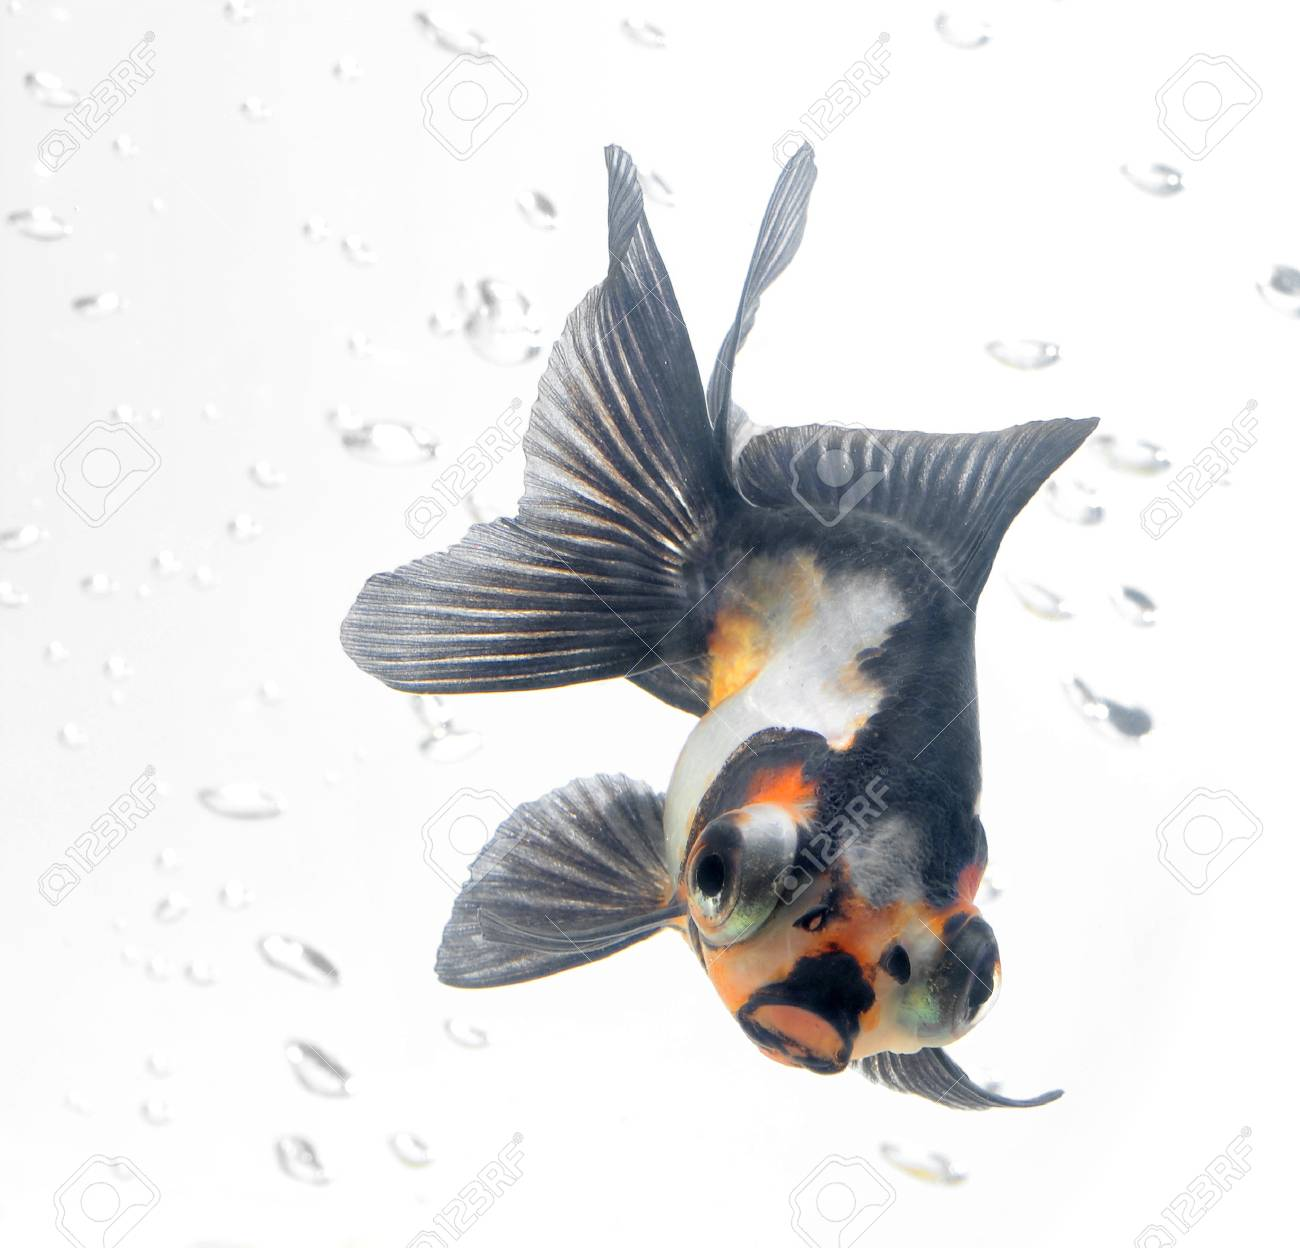 gold fish isolated on white background Stock Photo - 10575997